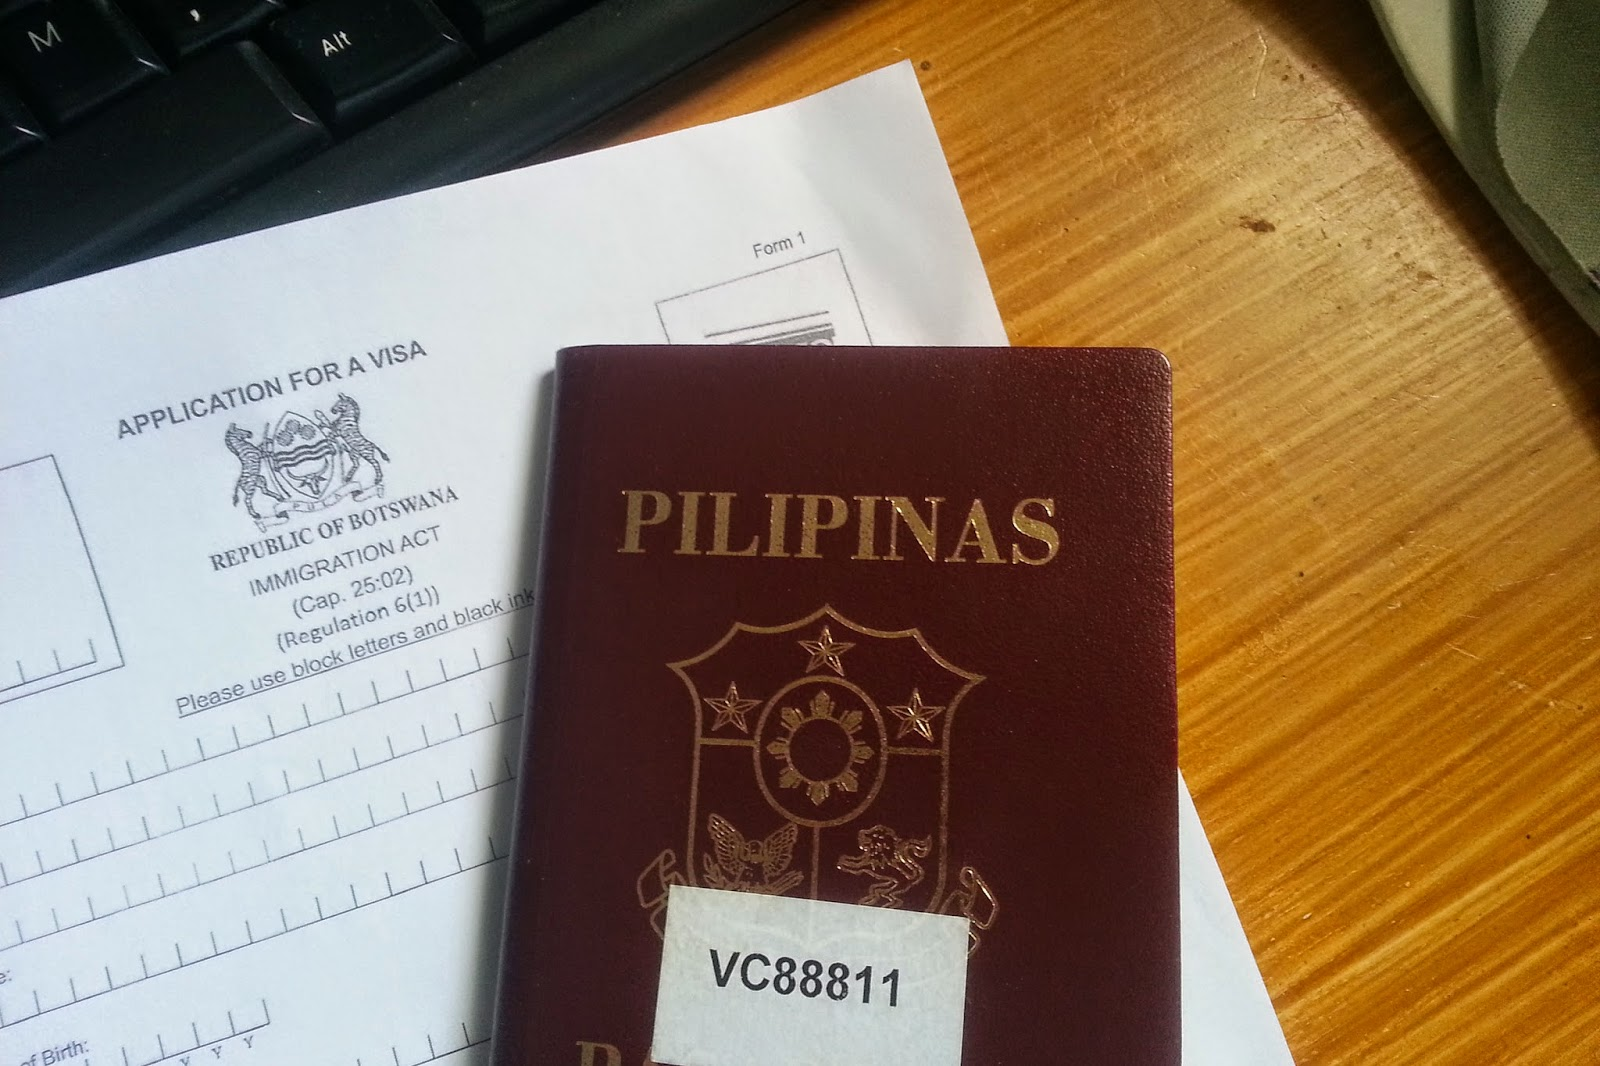 A Guide To Botswana Tourist Visa Application For Philippine Passport Holders